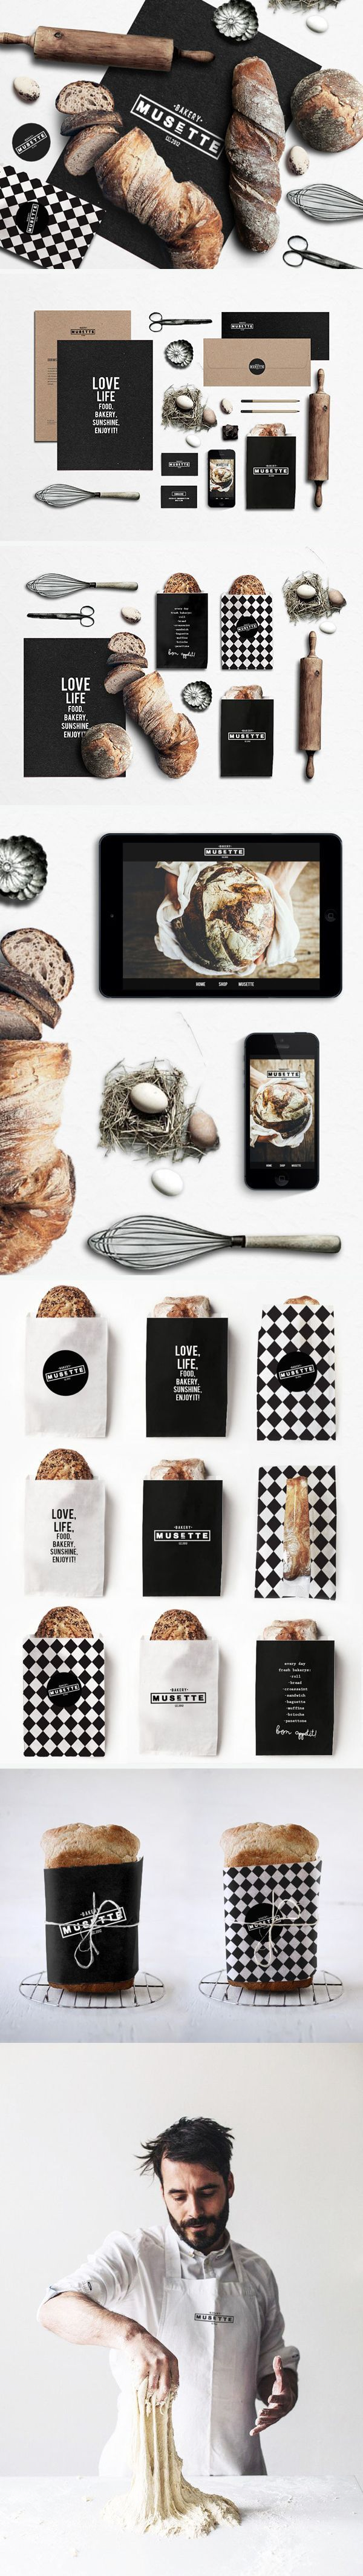 Musette bakery Identity, packaging, branding. Boy do I want some of this bread PD